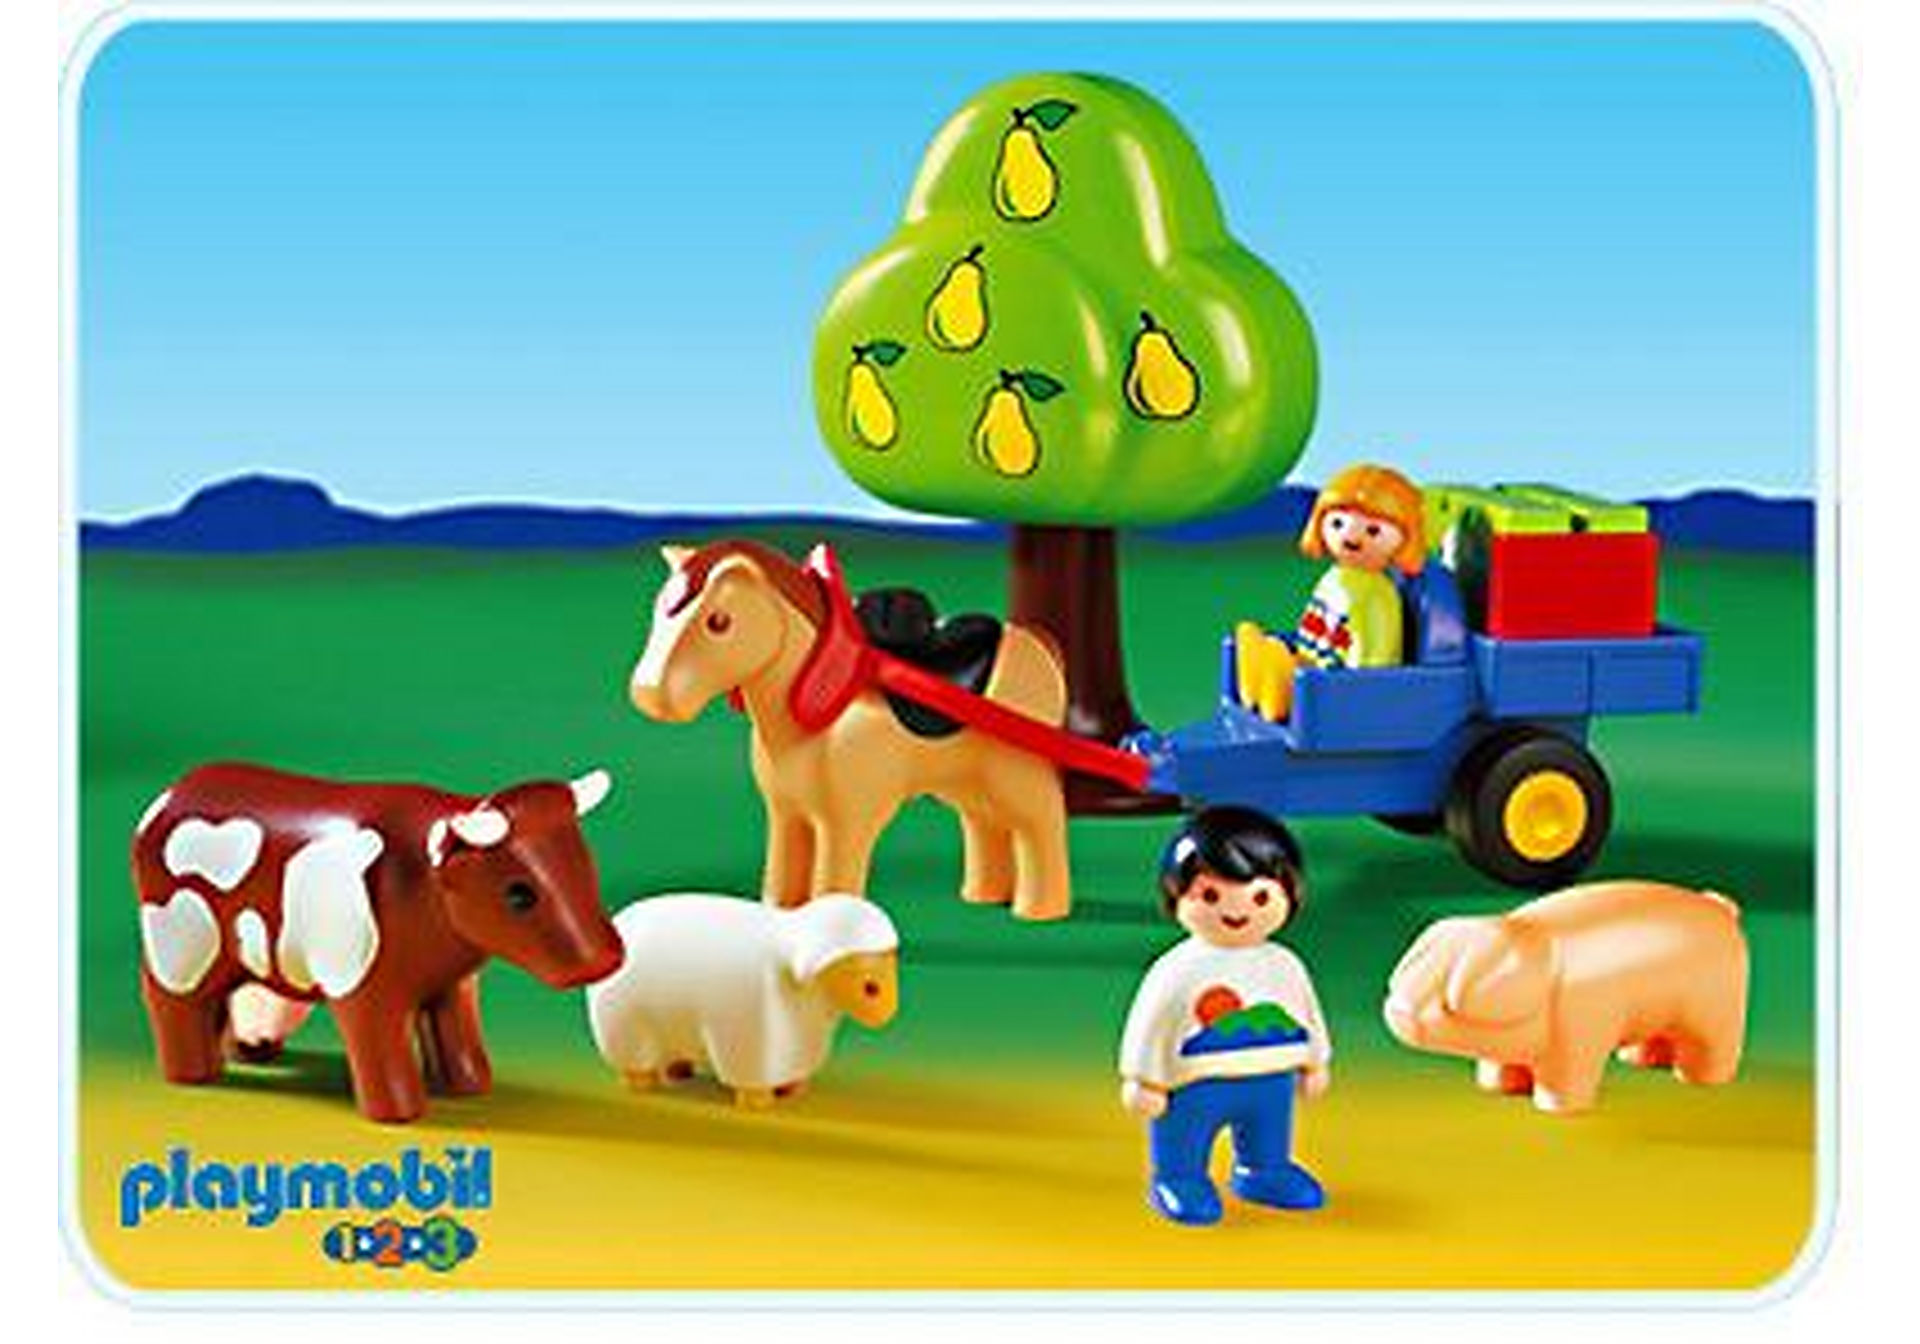 http://media.playmobil.com/i/playmobil/6620-A_product_detail/Sommerweide